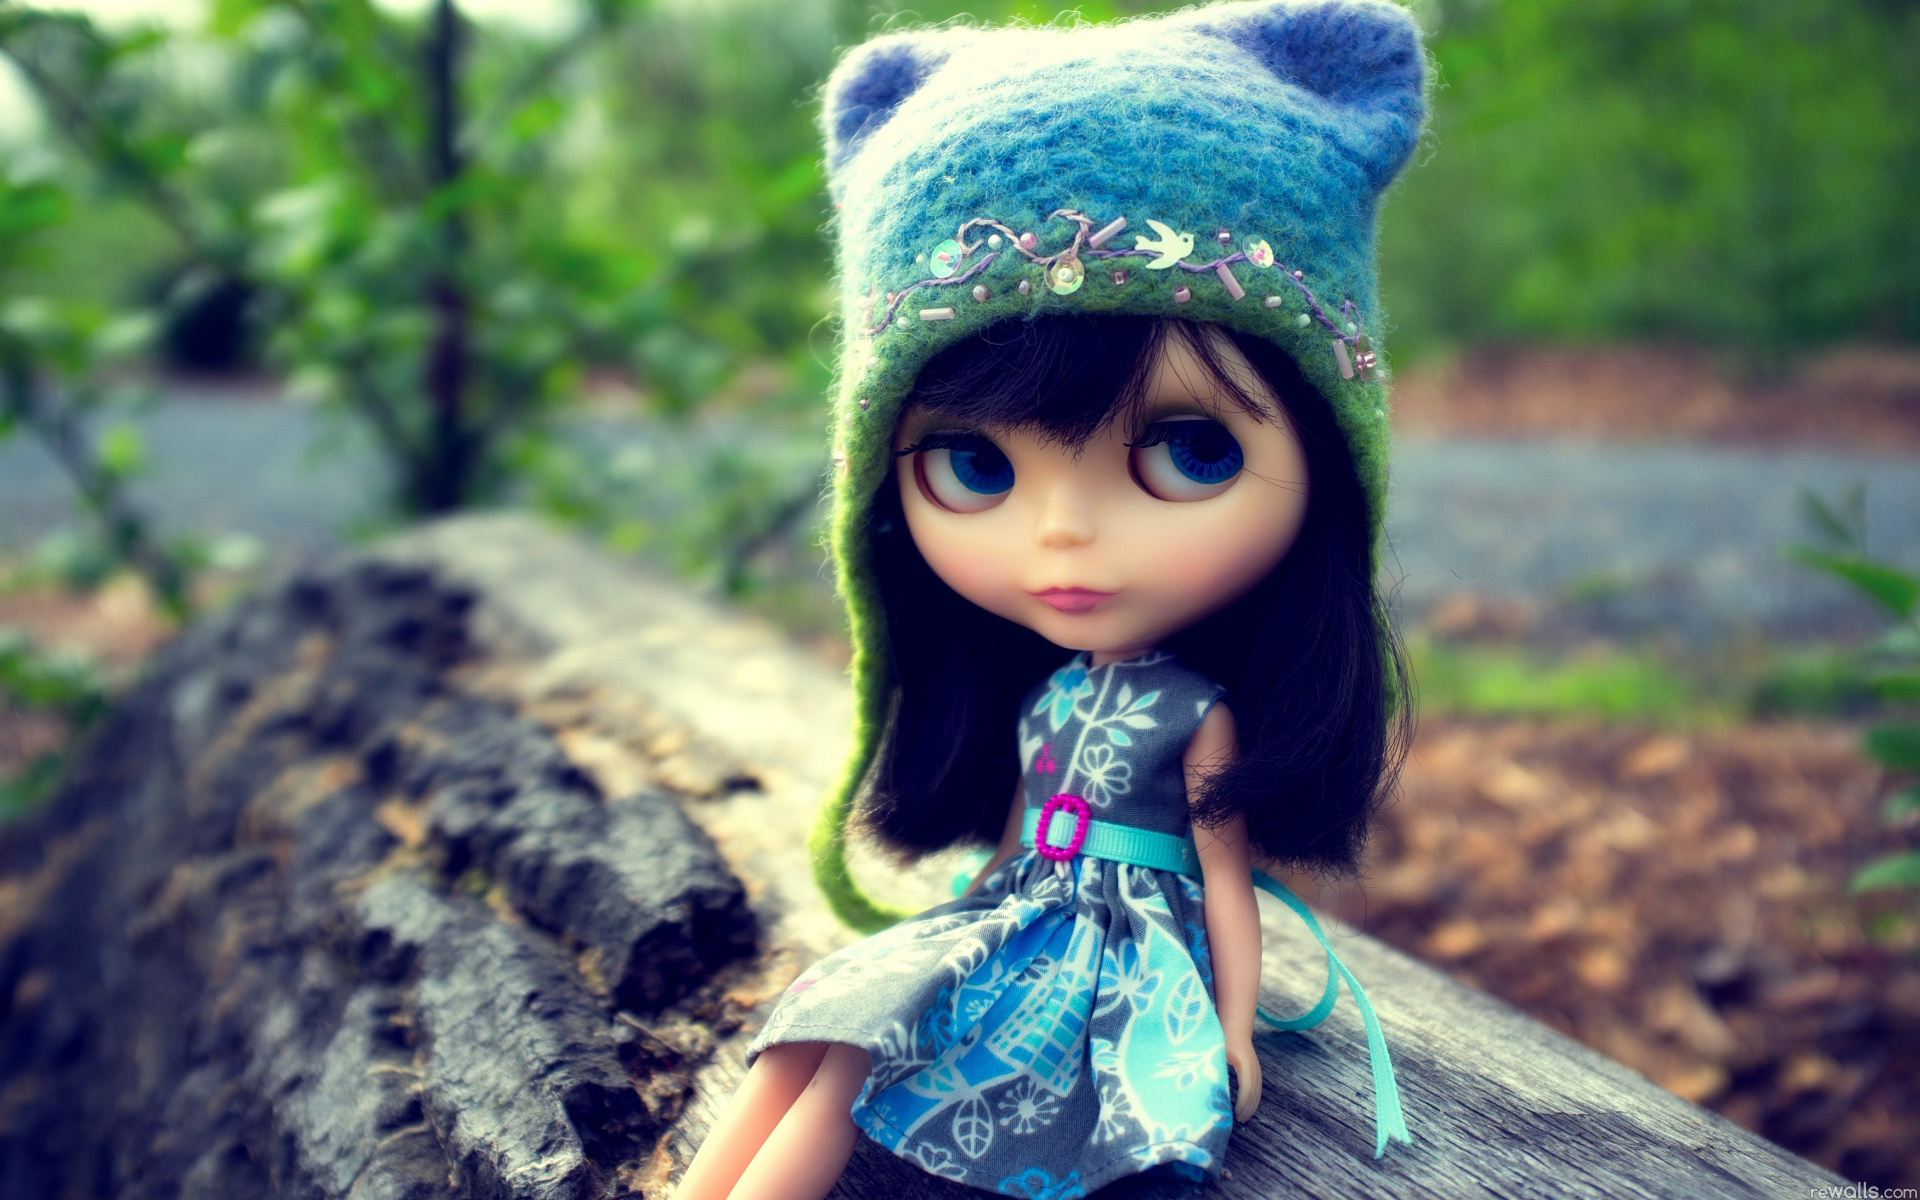 new cute doll hd wallpaper With Resolutions 19201200 Pixel 1920x1200